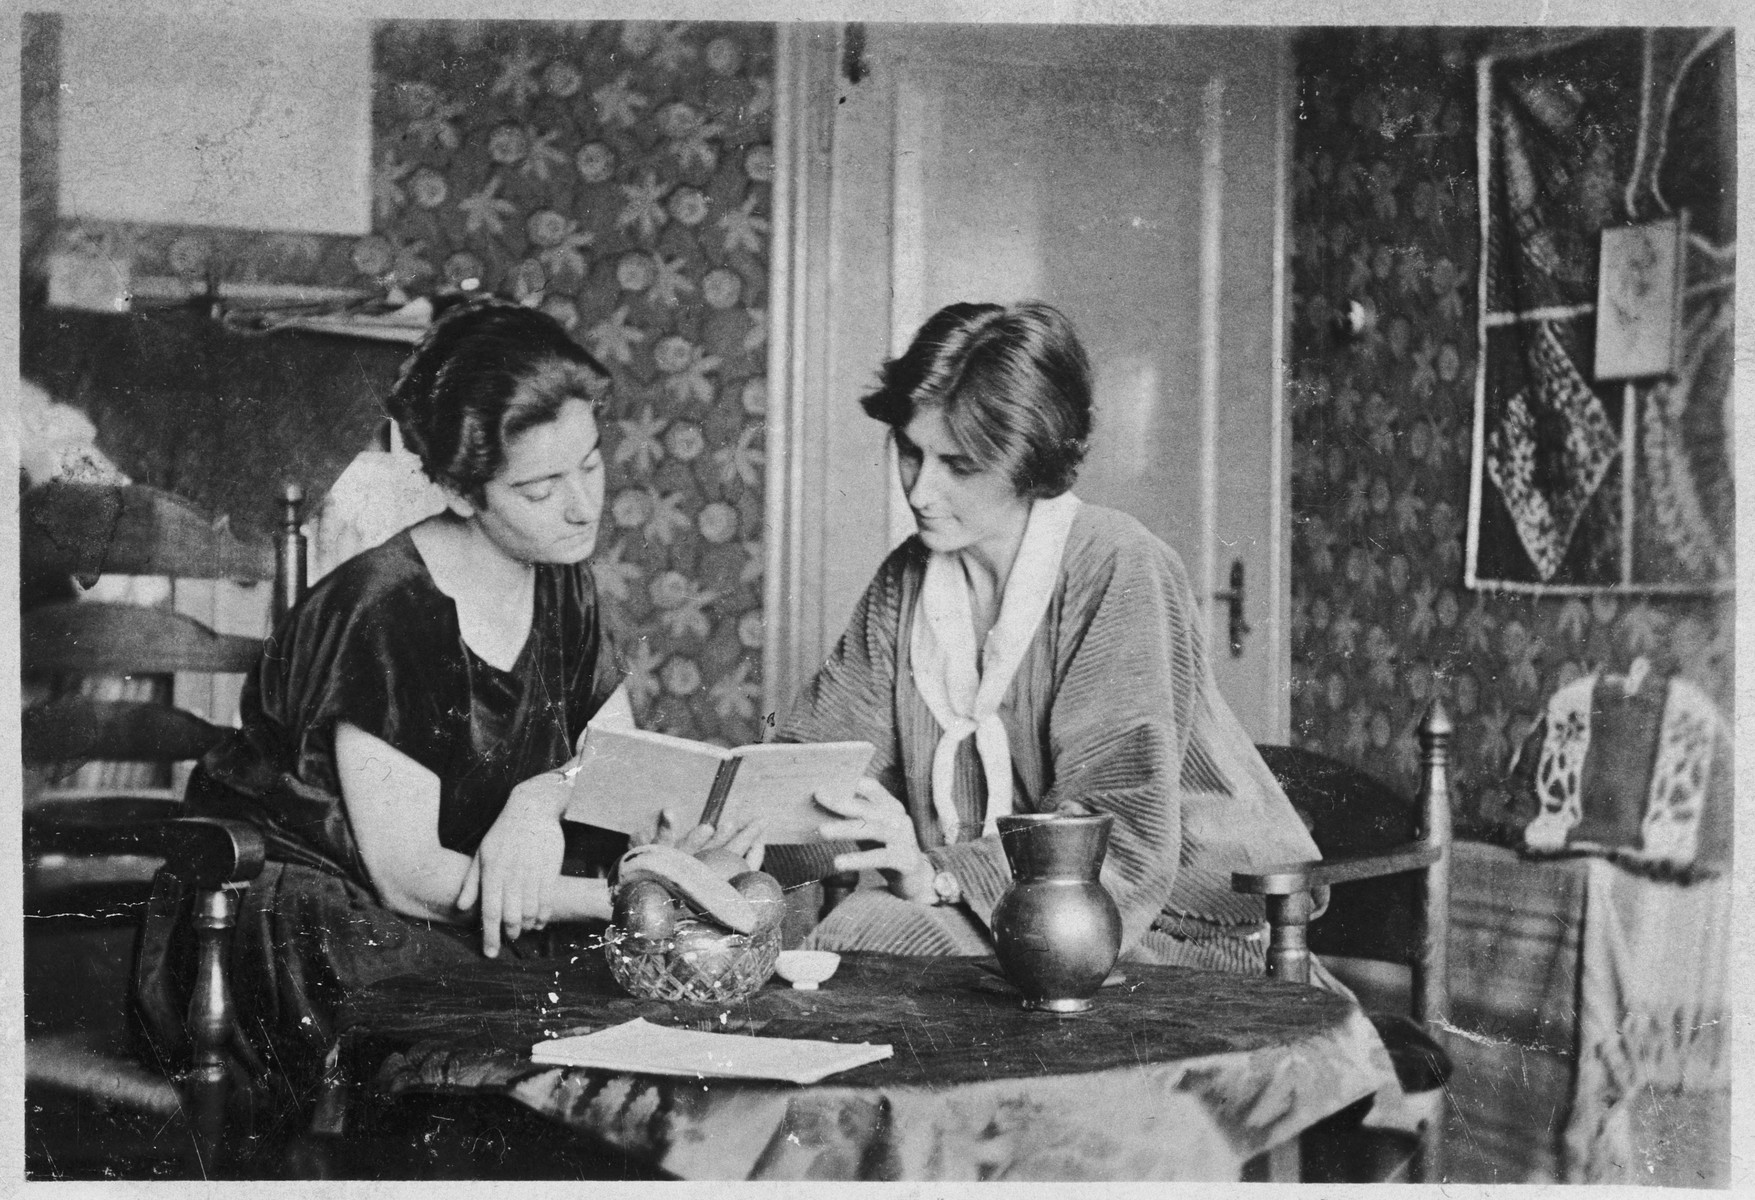 Frieda Belinfante sits at a table with her partner in their home at Hendrik Jacobszstraat in Amsterdam.   Henriette Bosmans, a well-known composer and pianist, was the partner of Frieda Belinfante for seven years.